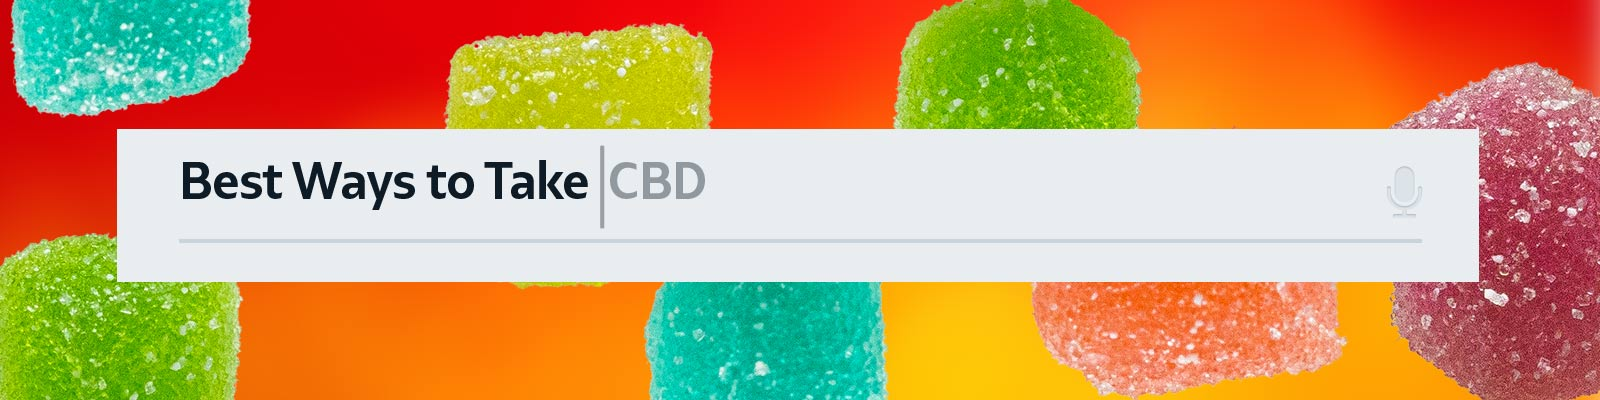 Best Ways to Take CBD Edibles, Oils, Topicals and More